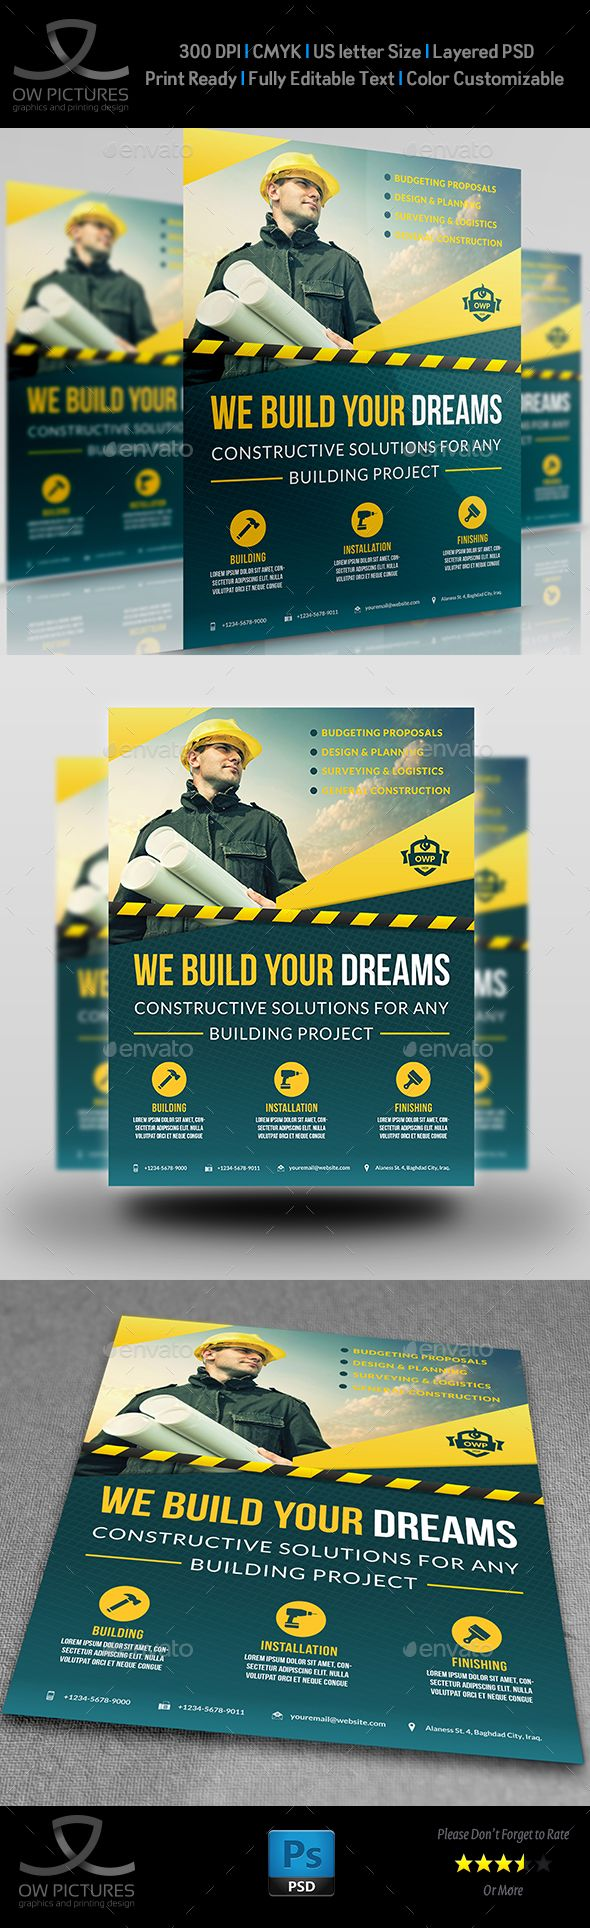 Construction business flyer vol4 construction business business construction business flyer template psd download here httpgraphicriveritemconstruction business flyer vol416686020refksioks wajeb Images